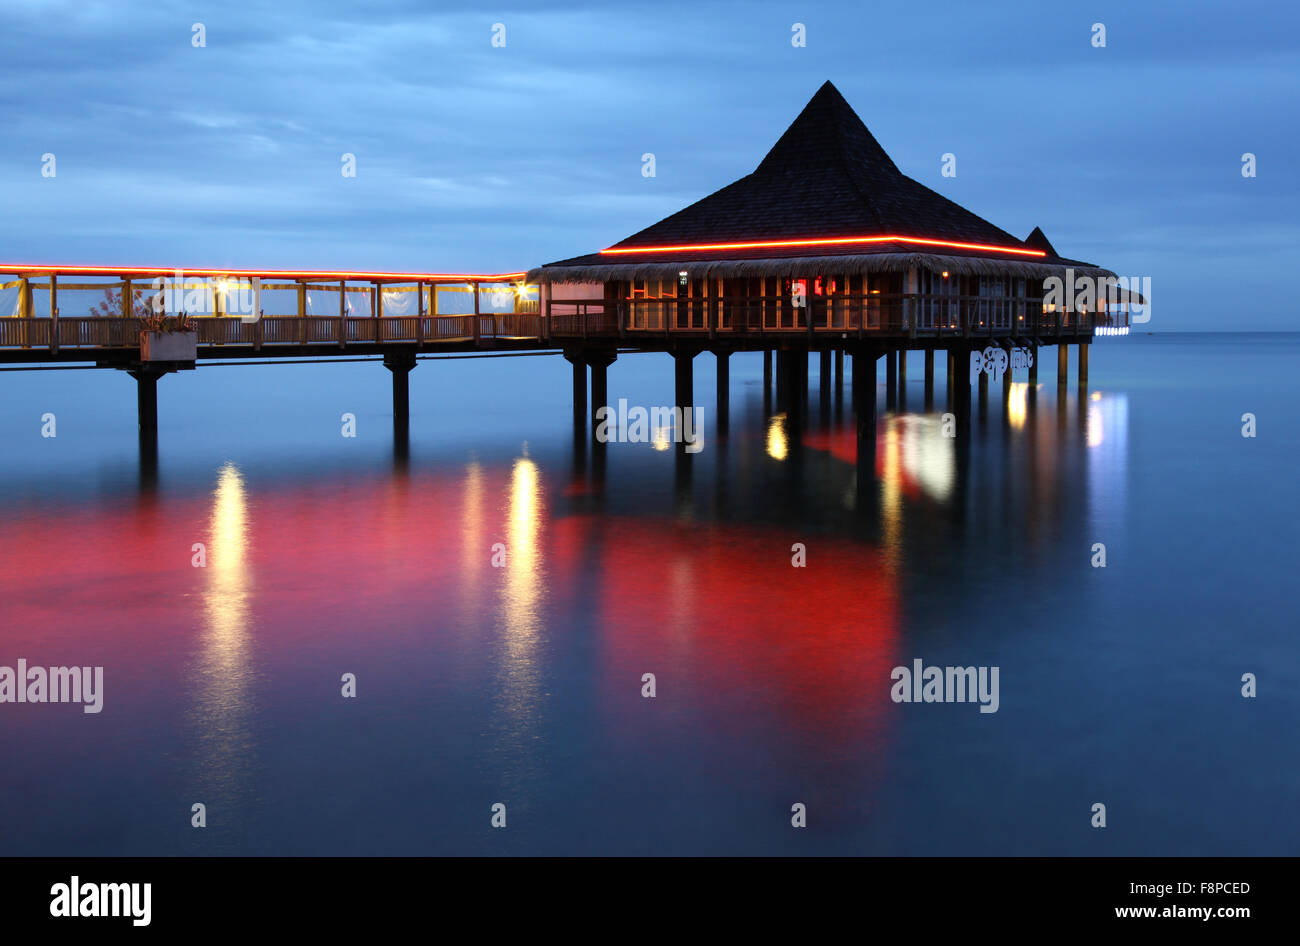 The Bodega del Mar over-water bar and restaurant in Anse Vata Bay is a cornerstone of Noumea's nightlife. - Stock Image